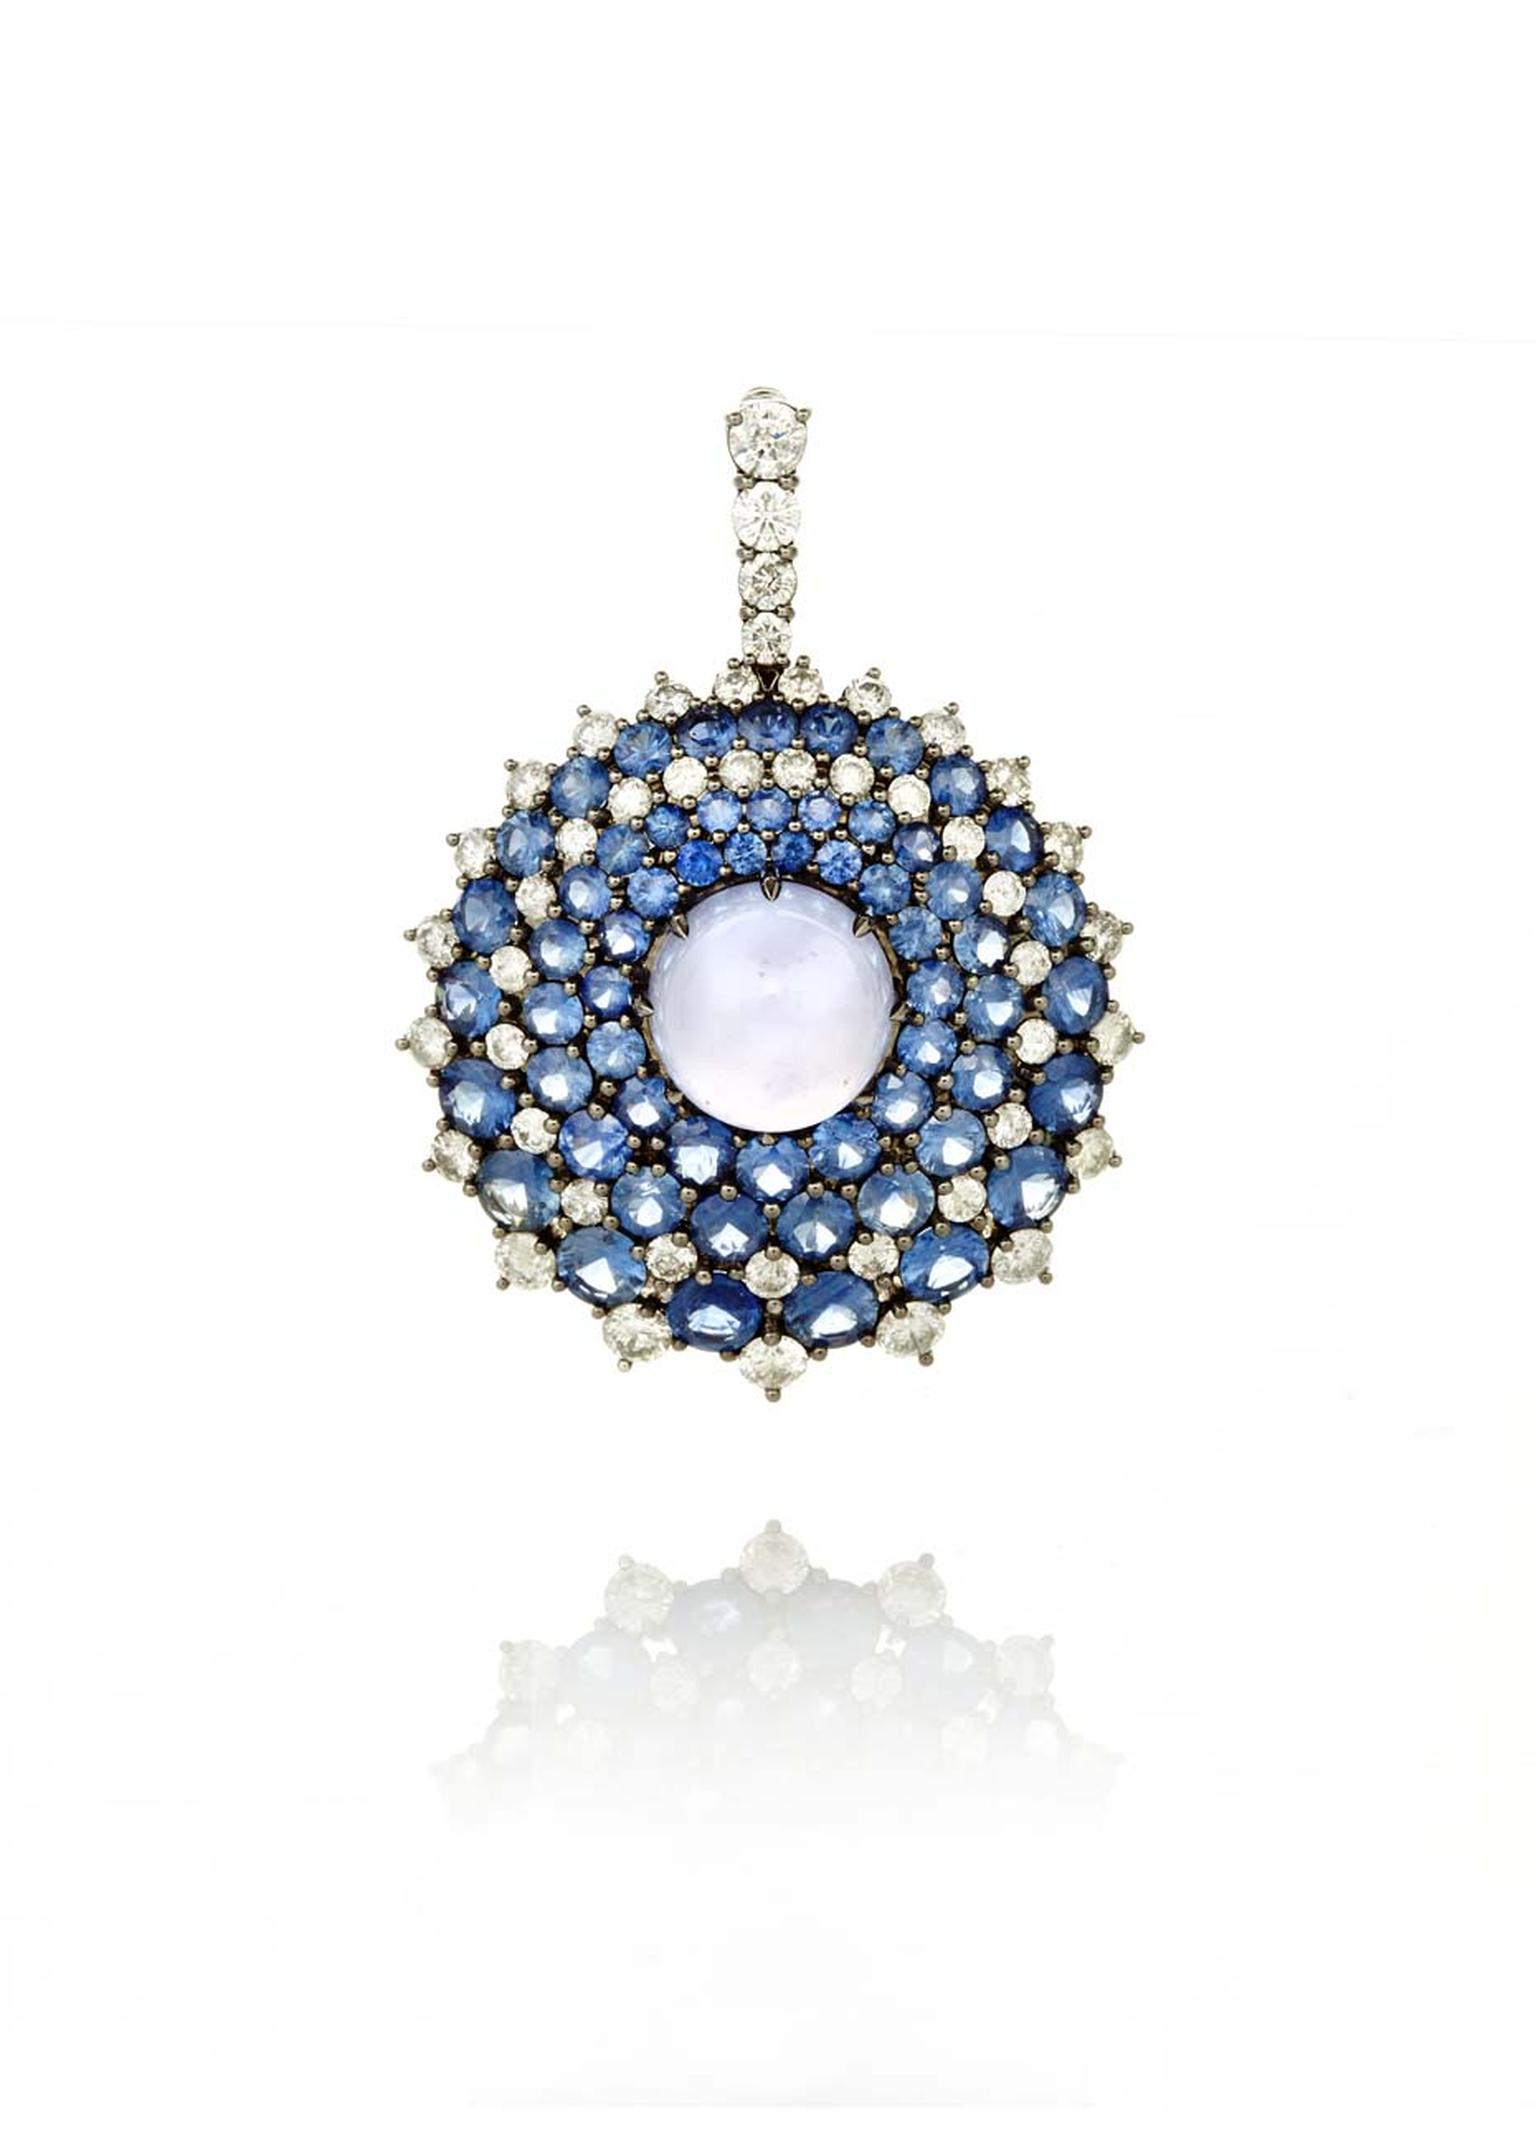 Nam Cho Riviera convertible pendant and pin with a central pastel blue chalcedony orb surrounded by circles of random pavé-set faceted sapphires and diamonds (from $26,500).